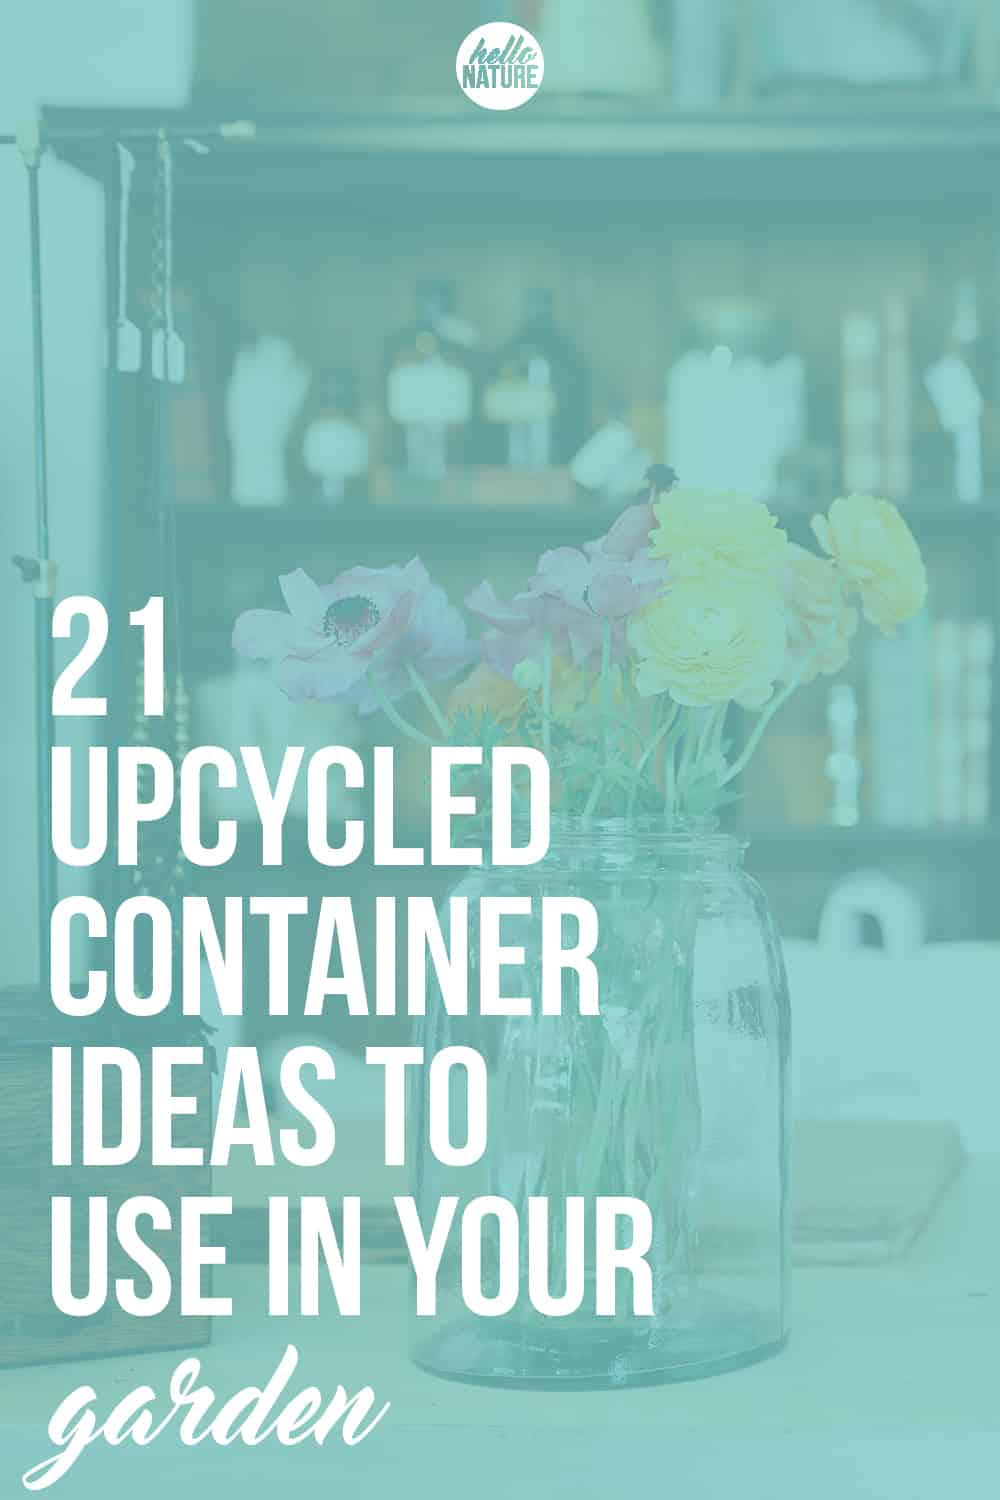 Go green and repurpose some of your worn out household items with these upcycled container ideas for container gardens!